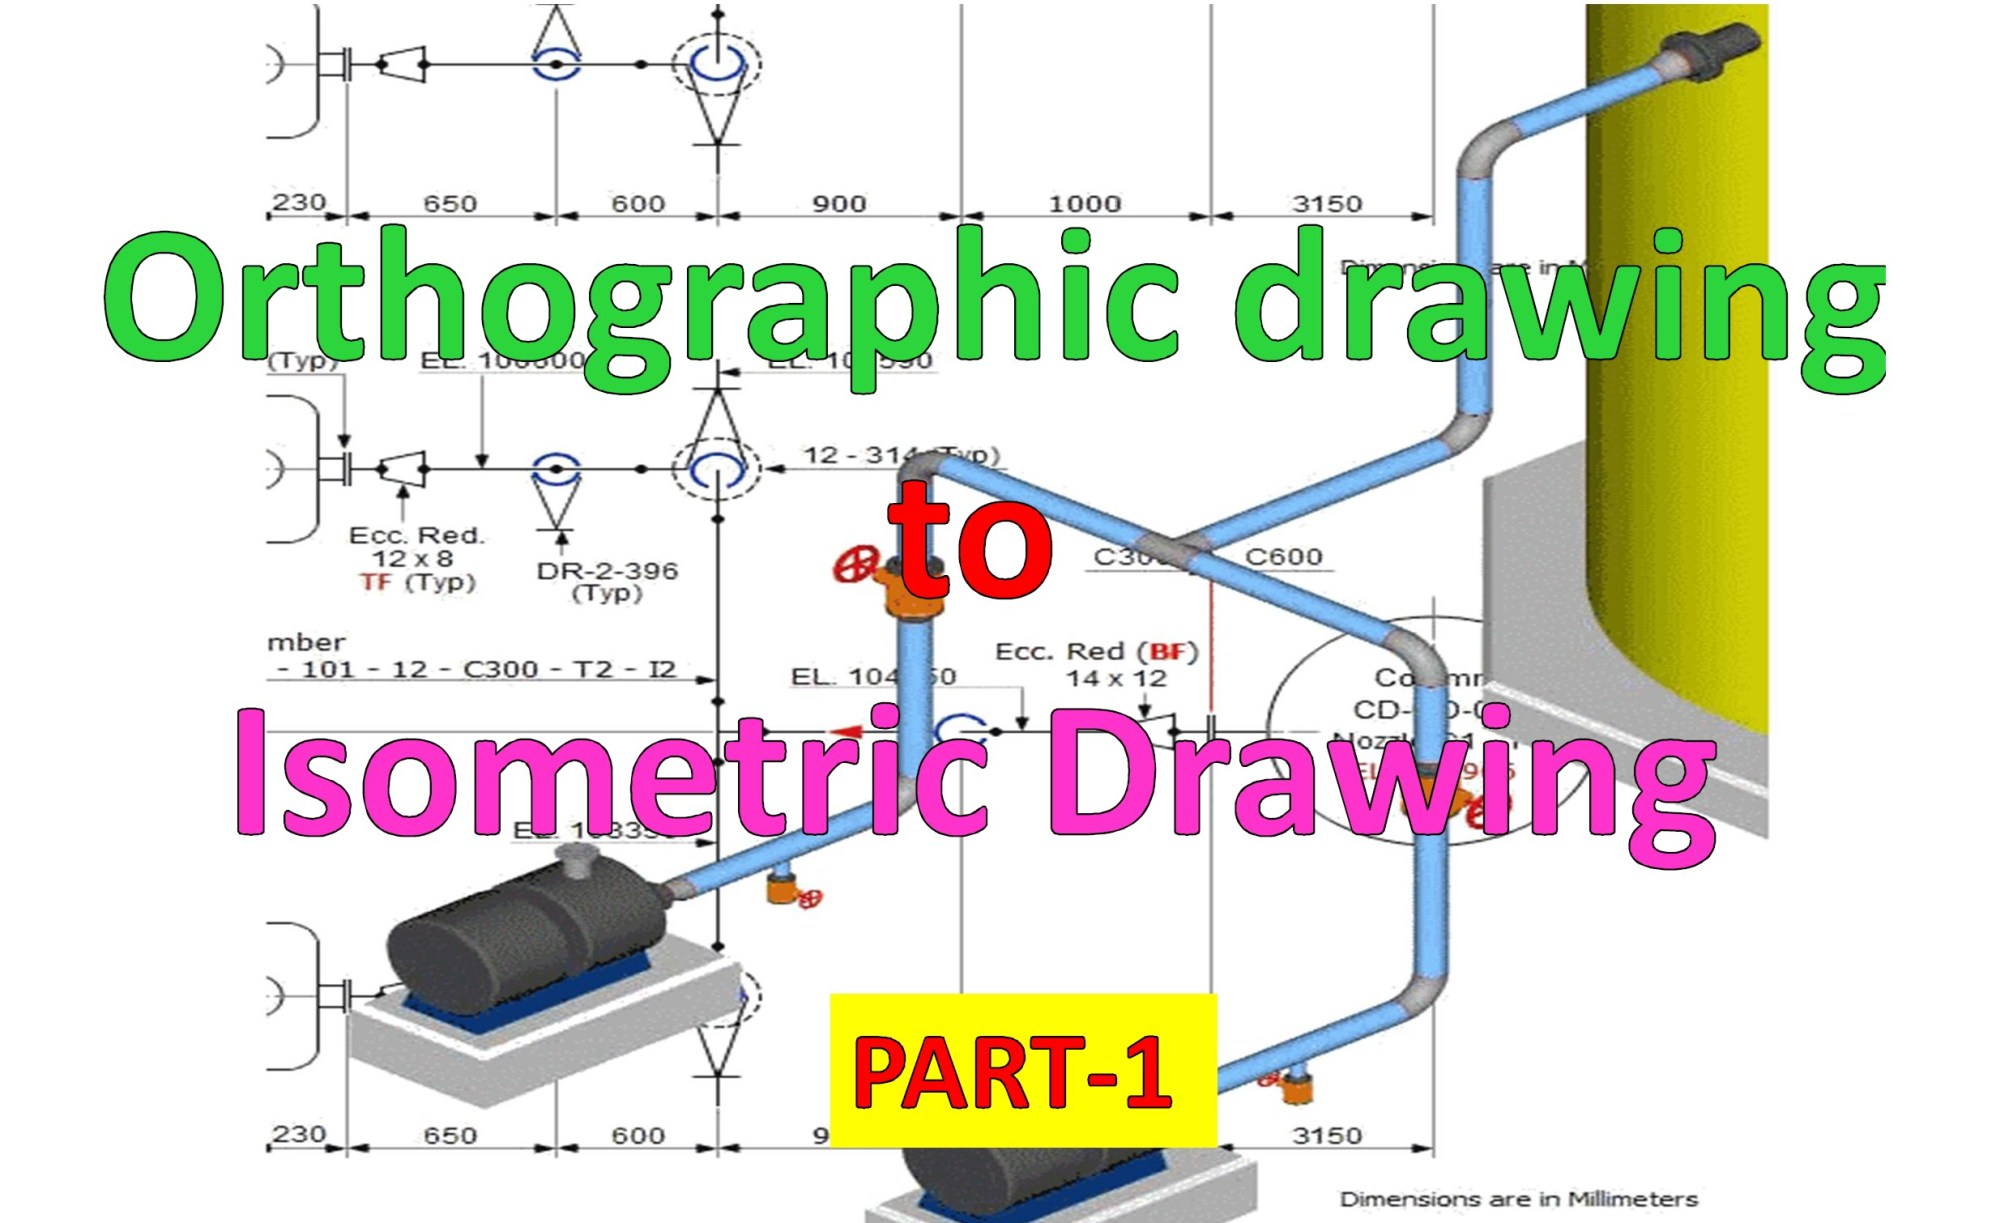 hight resolution of 2469x1510 piping draw isometric drawing from orthographic drawing part 1